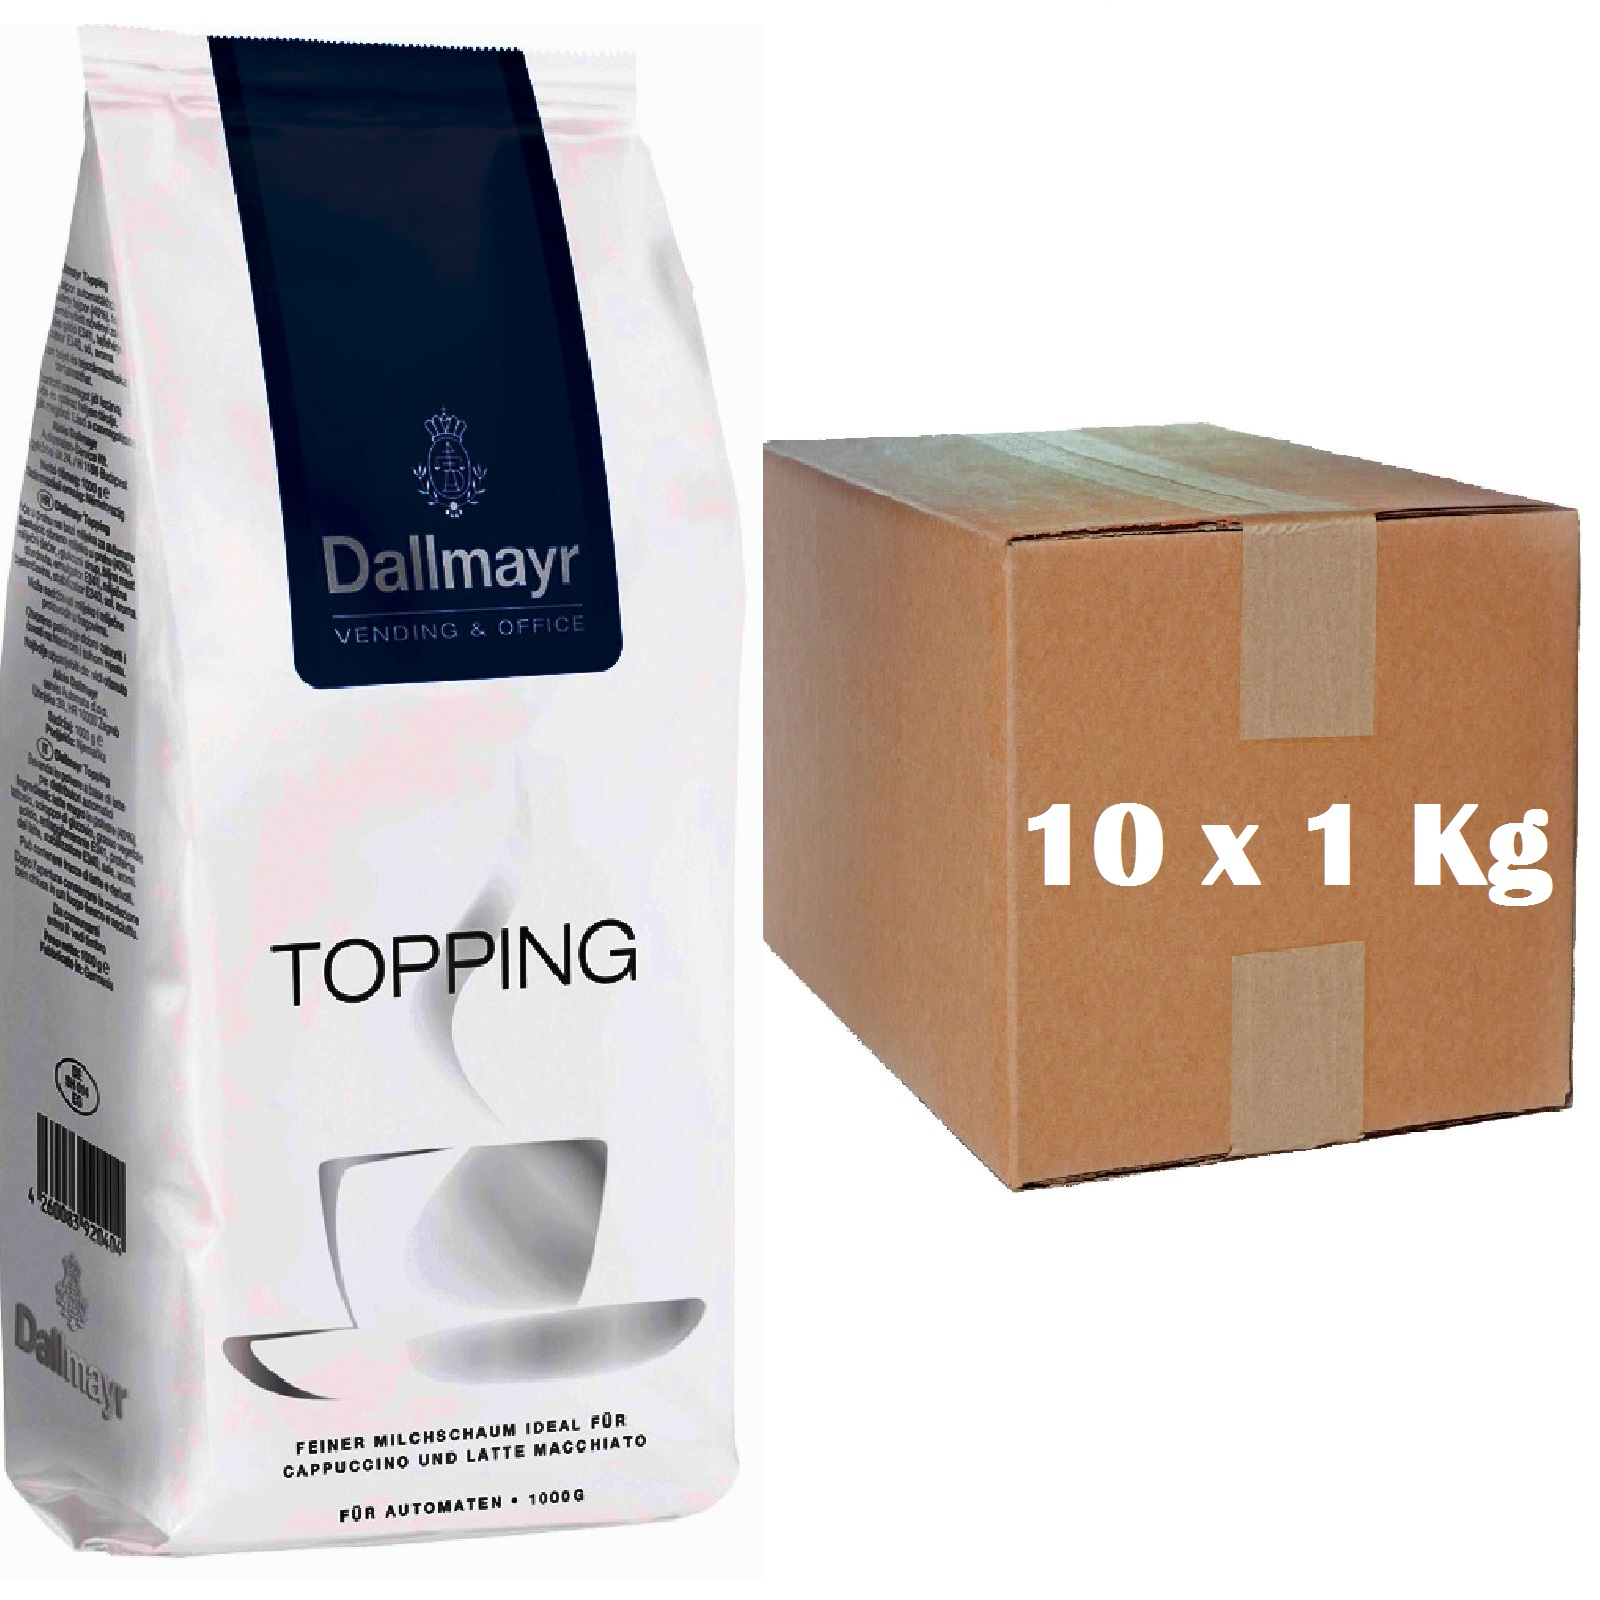 Dallmayr Topping Milchpulver 10 x 1kg Vending